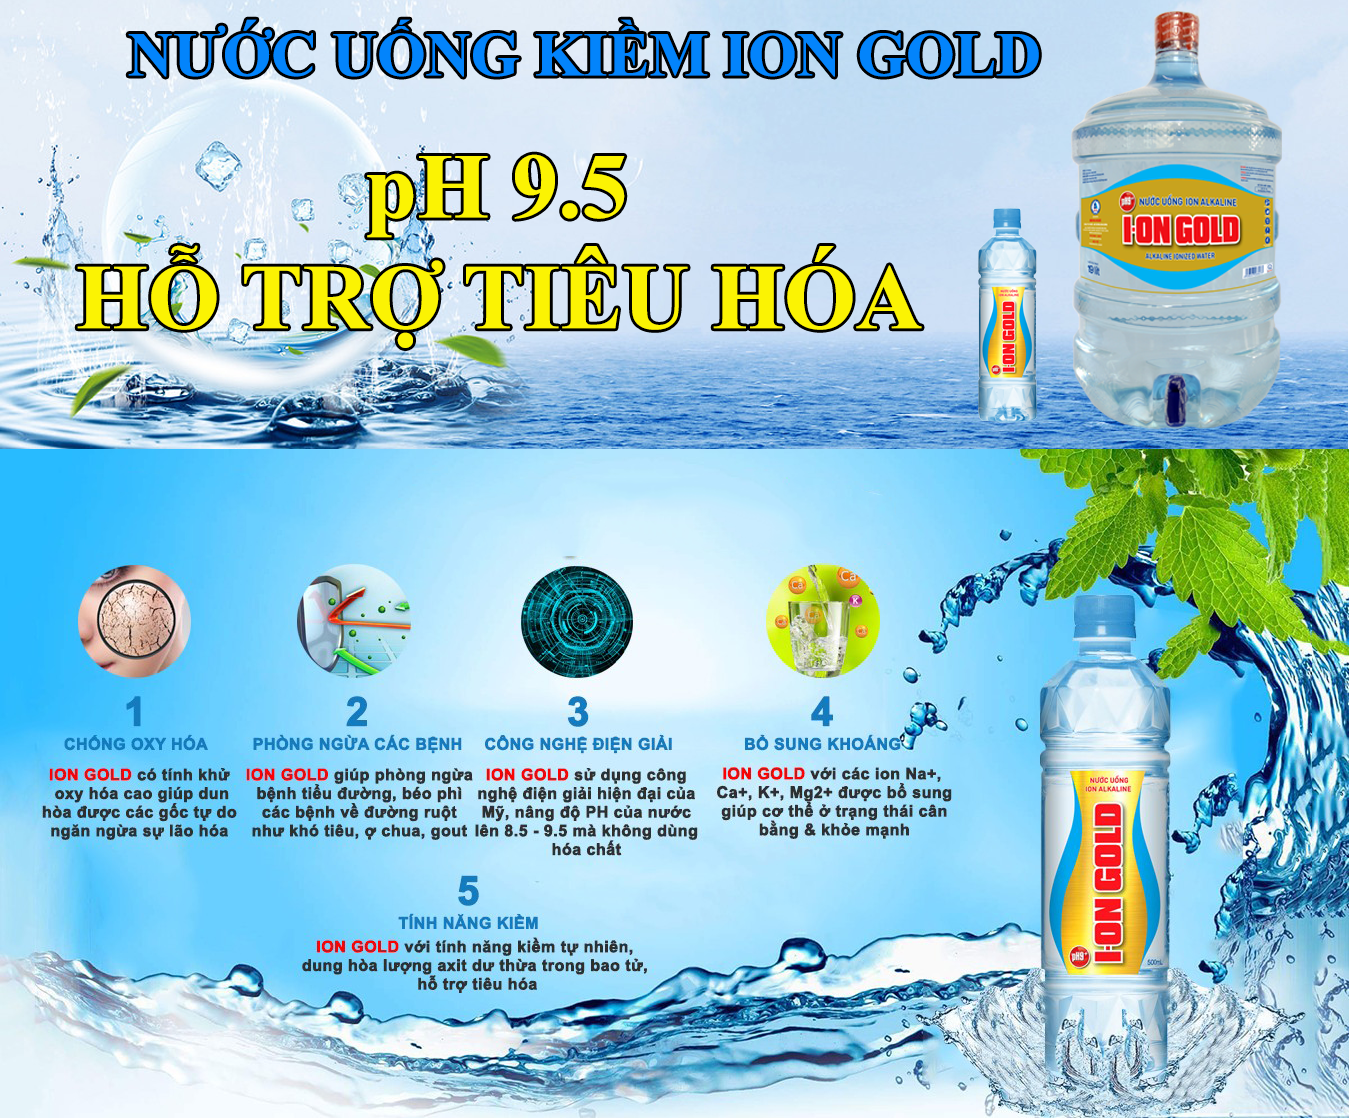 1. Iongold